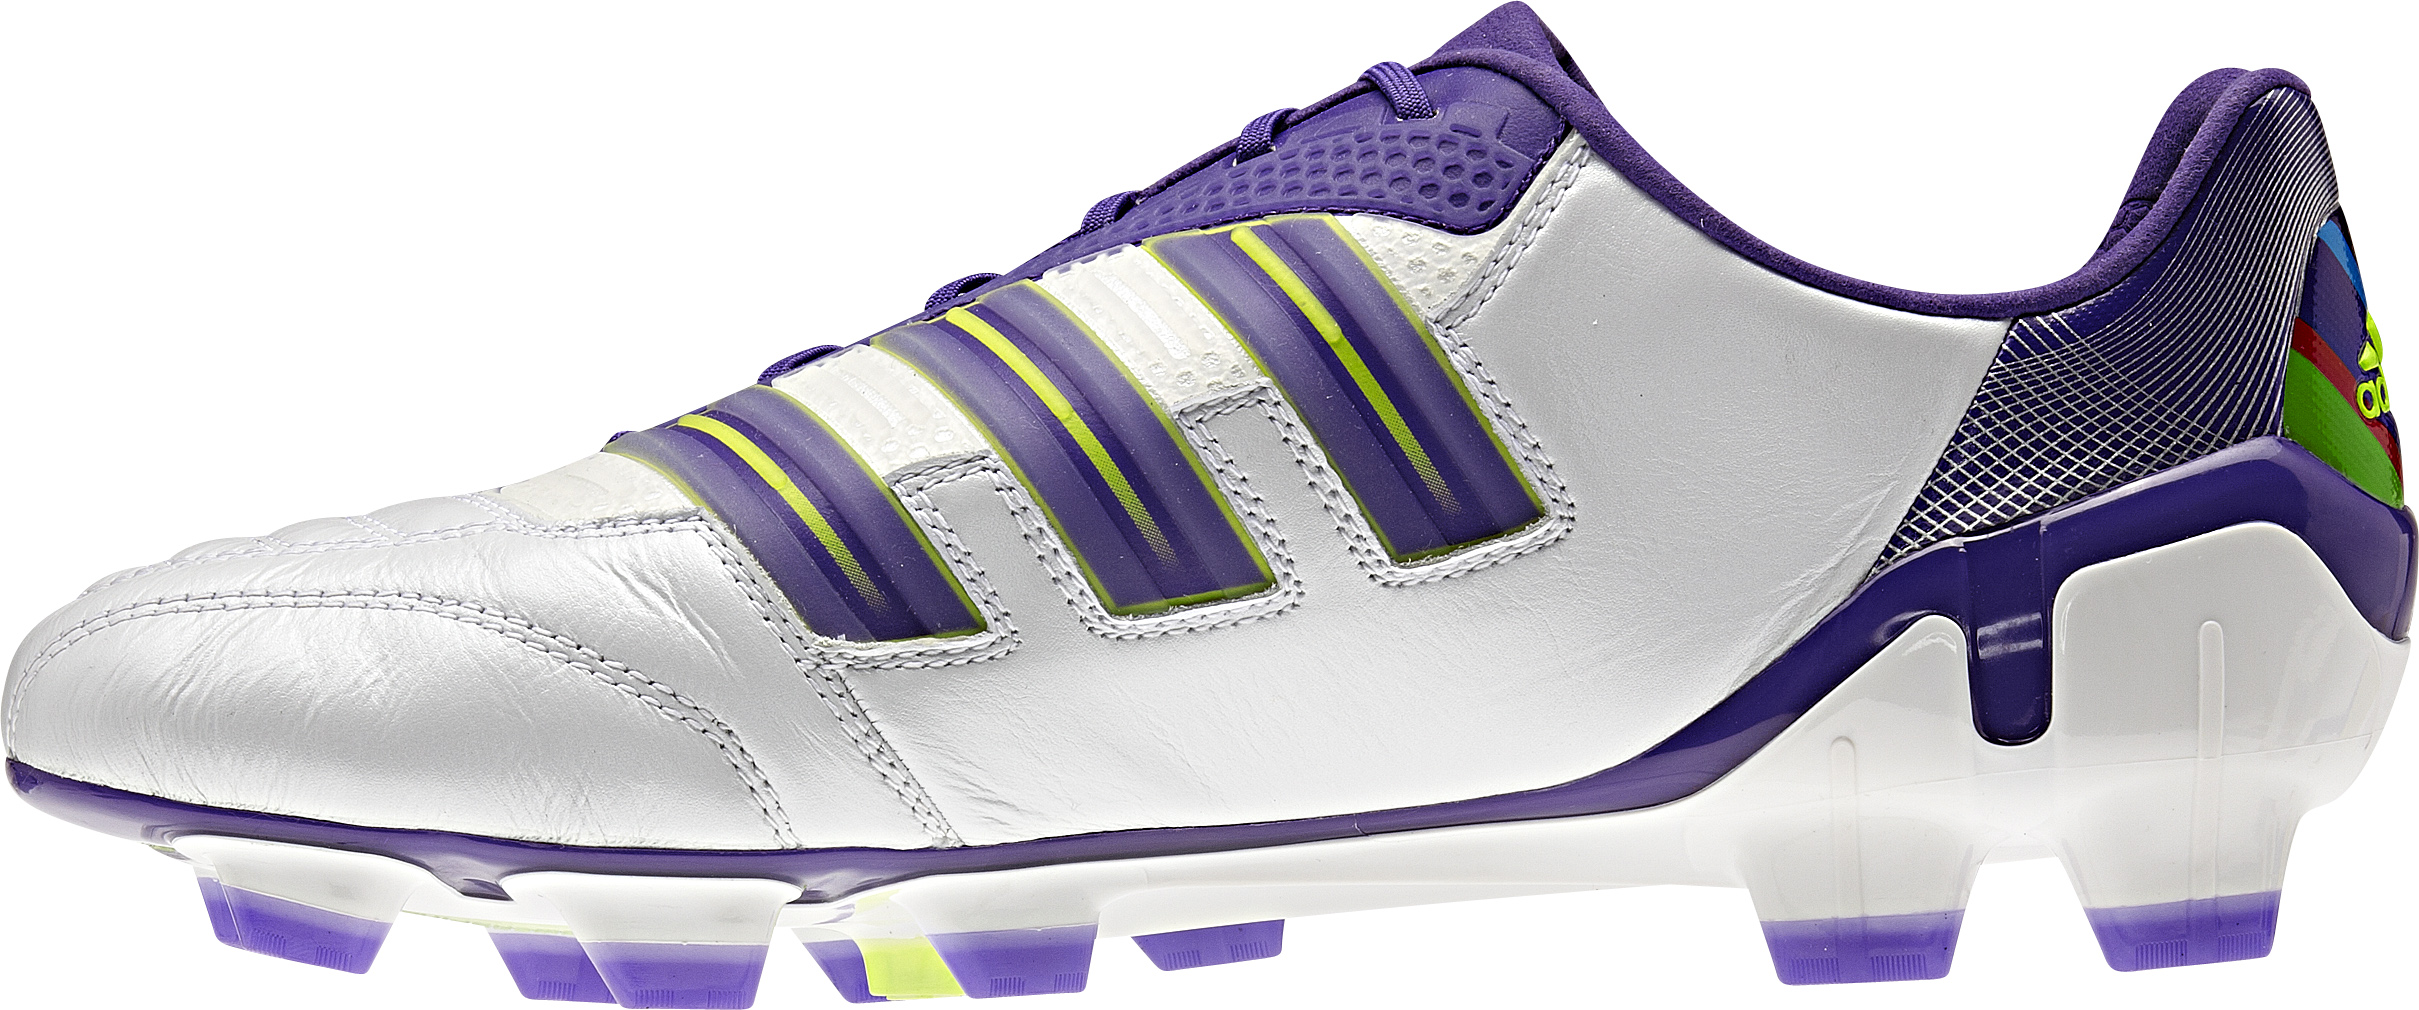 b86ca536e64 In line with adidas  continued advancements in boot technology the adiPower  predator ...